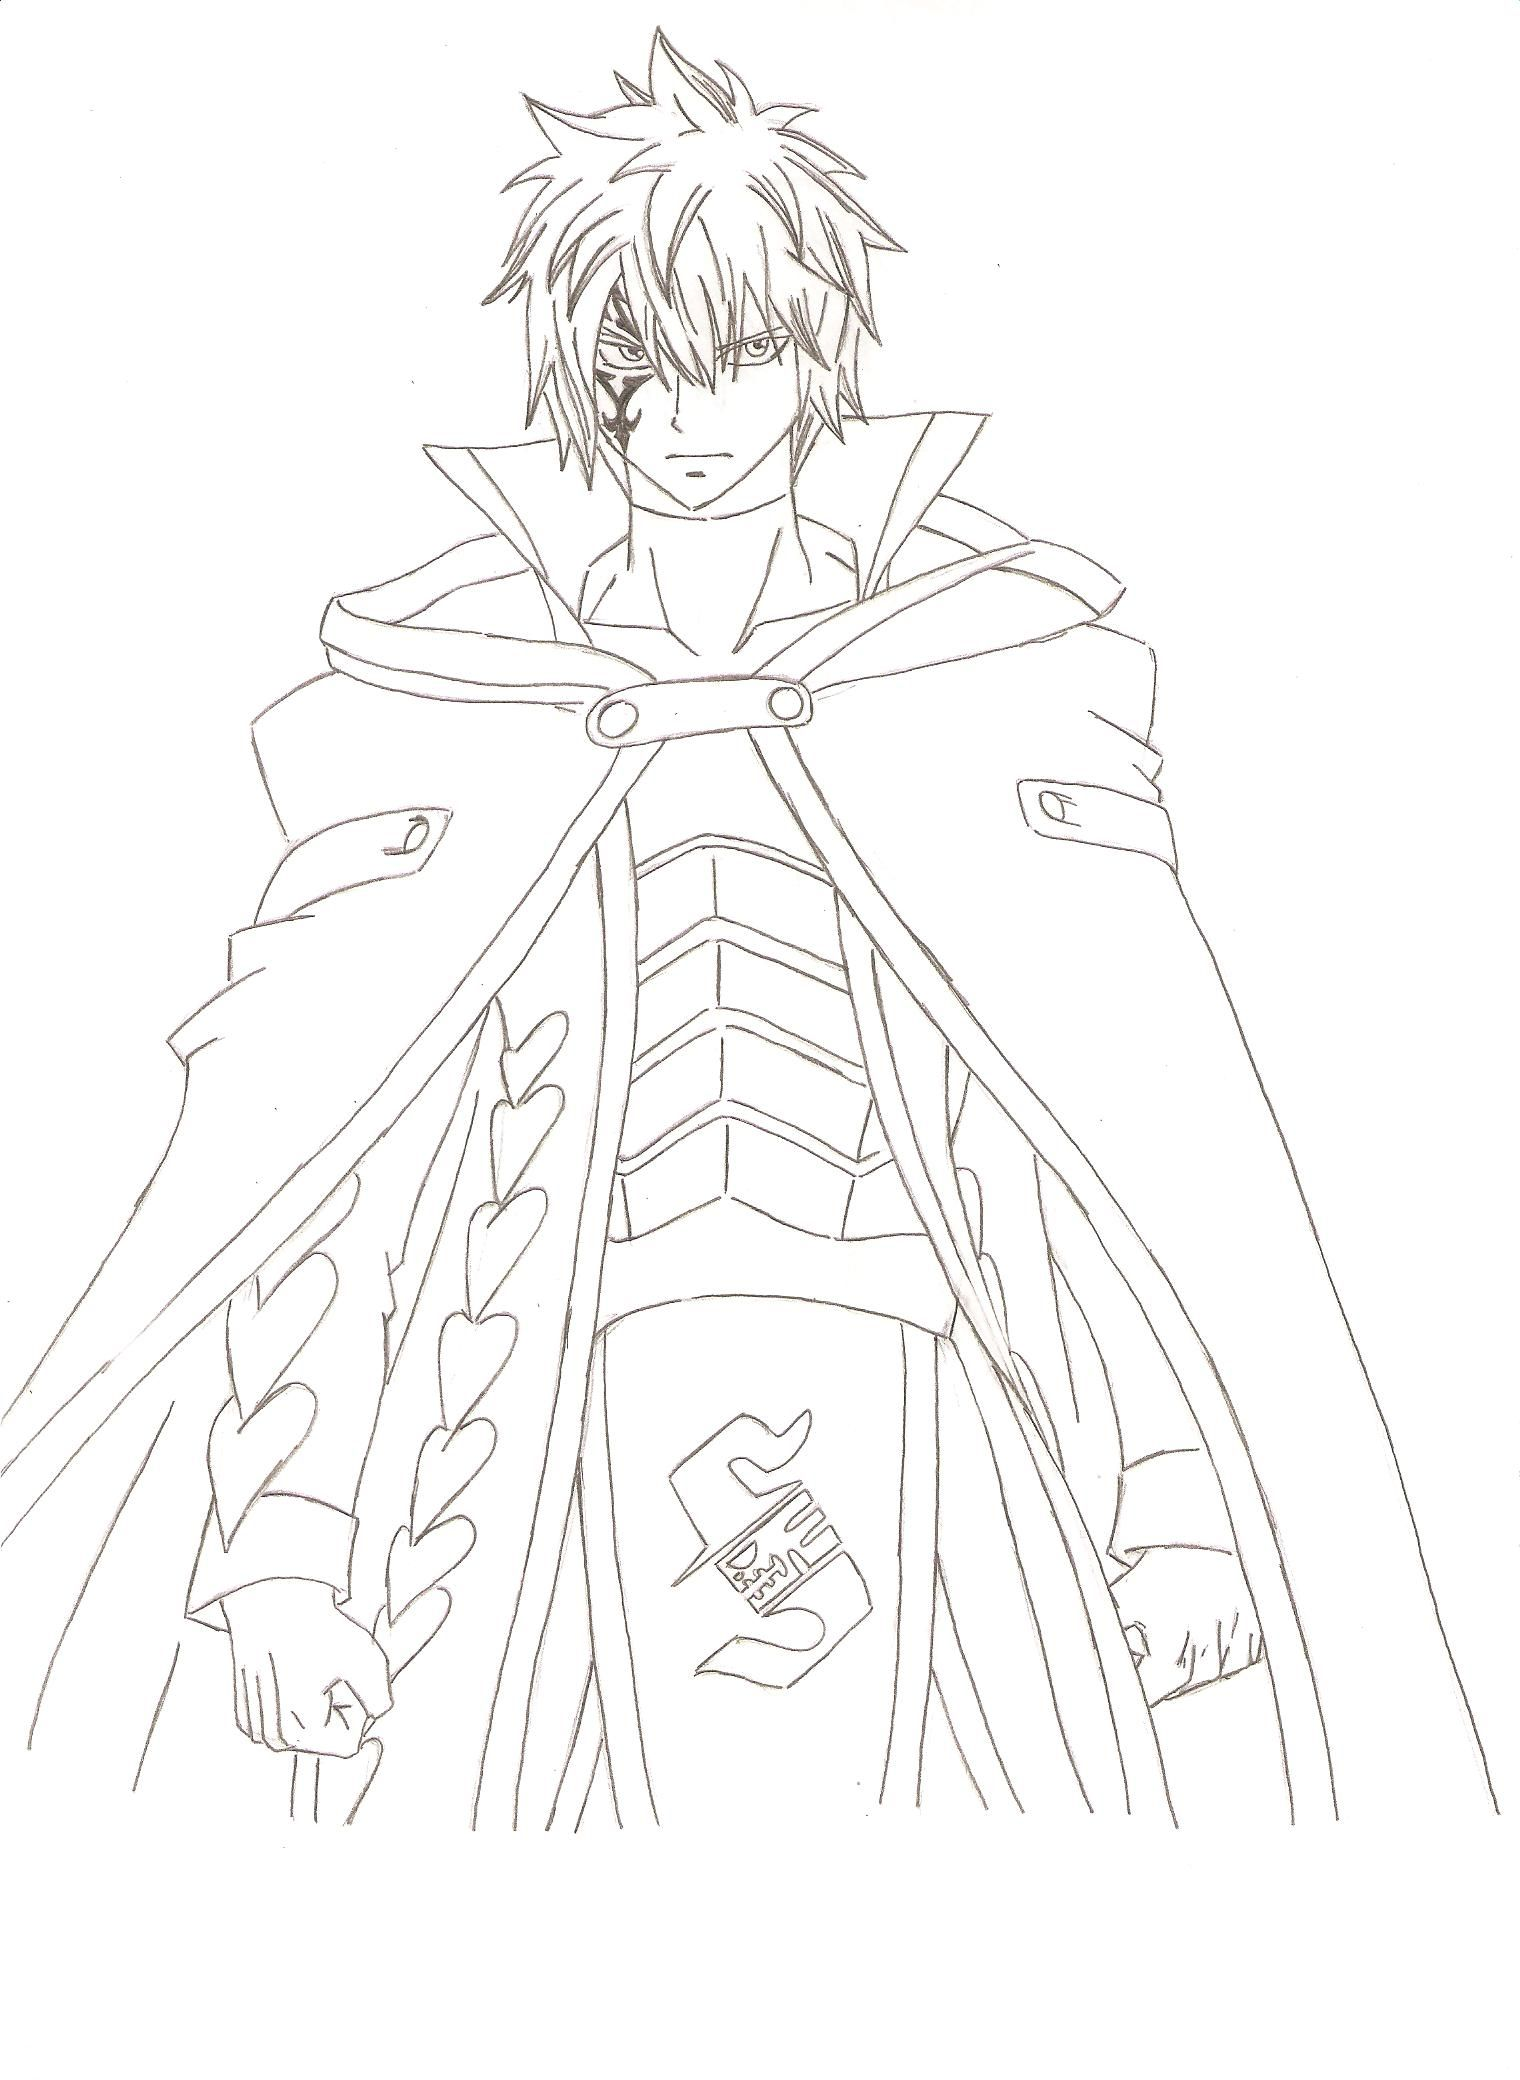 jellal from crime sorciere by FairyTail0079 on DeviantArt | LineArt ...